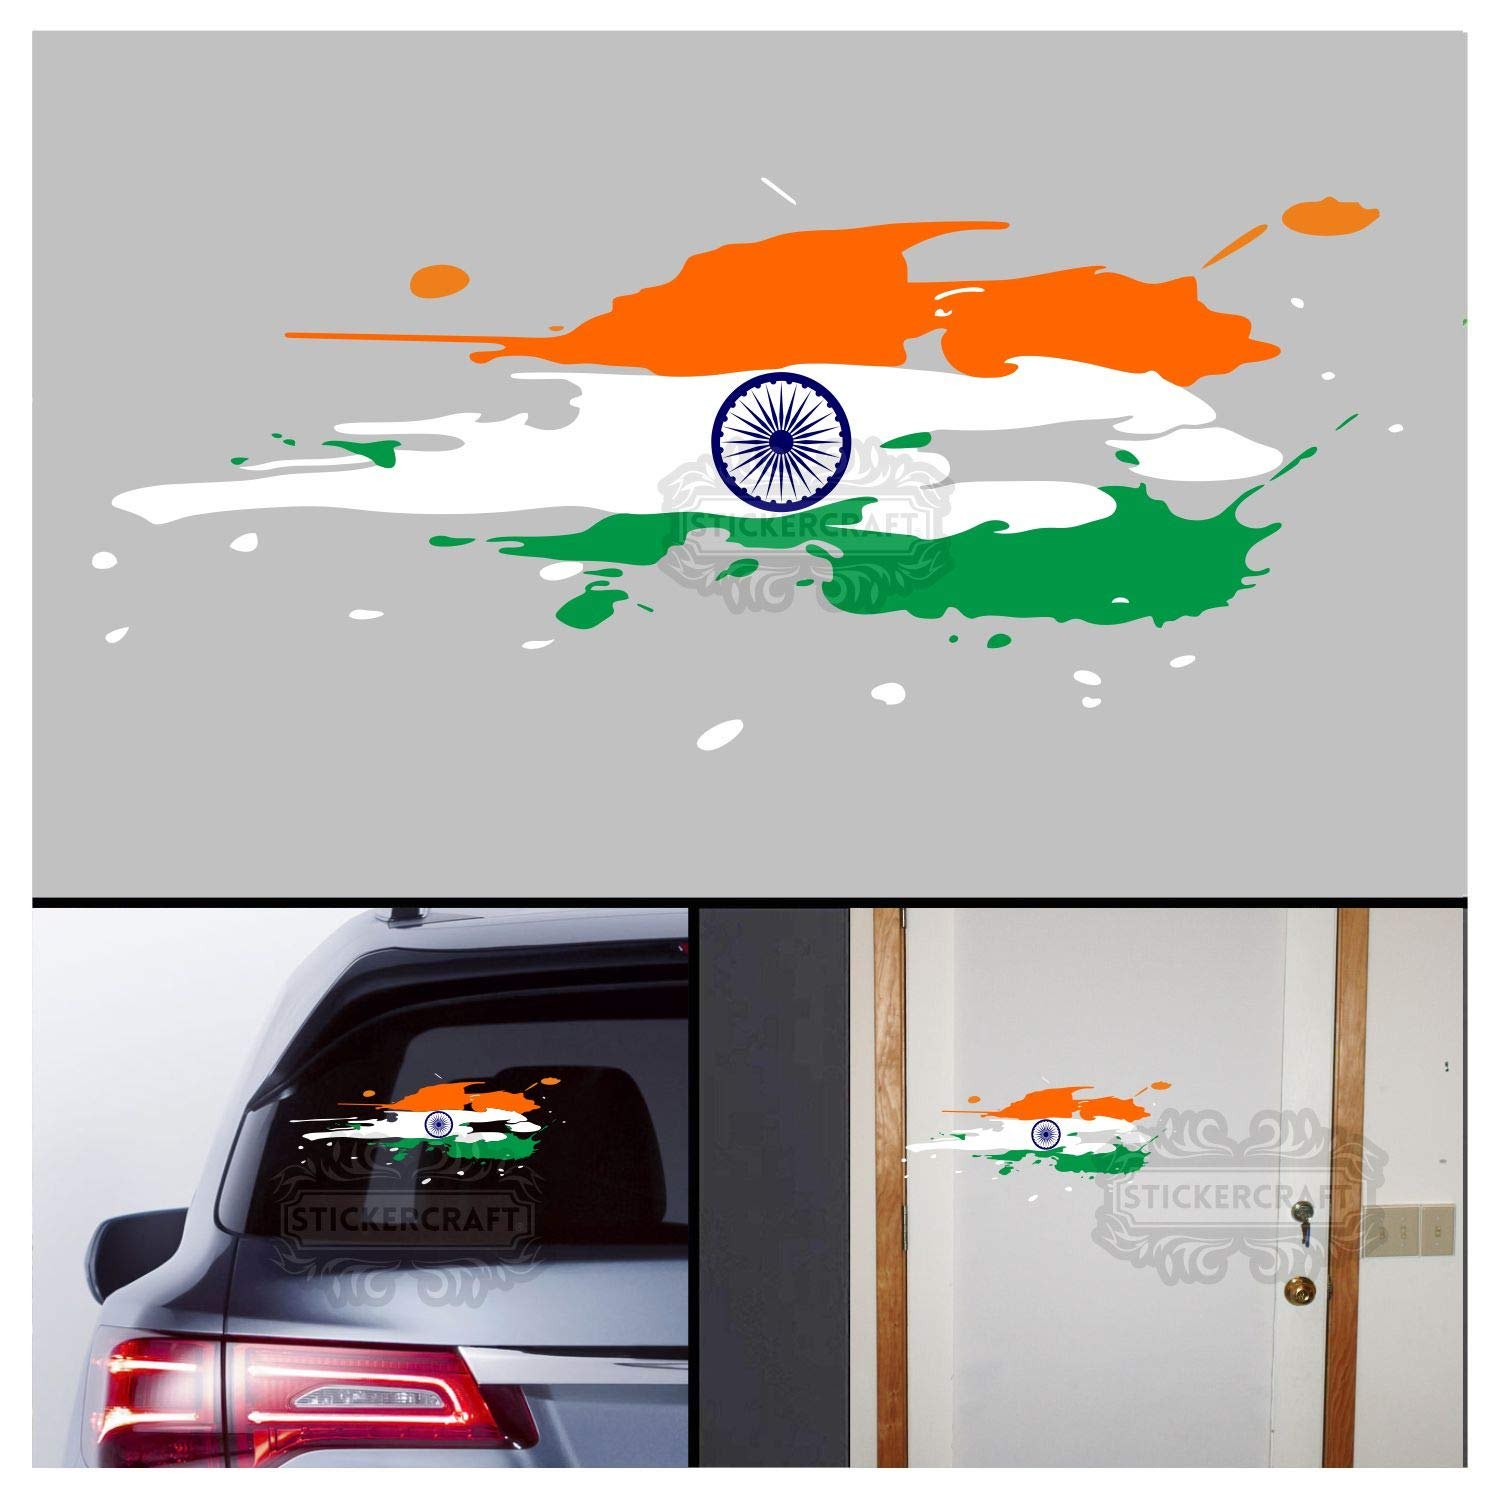 Stickercraft indian flag car stickers water splash design for body glass wall vinyl 12lx5w inches amazon in car motorbike